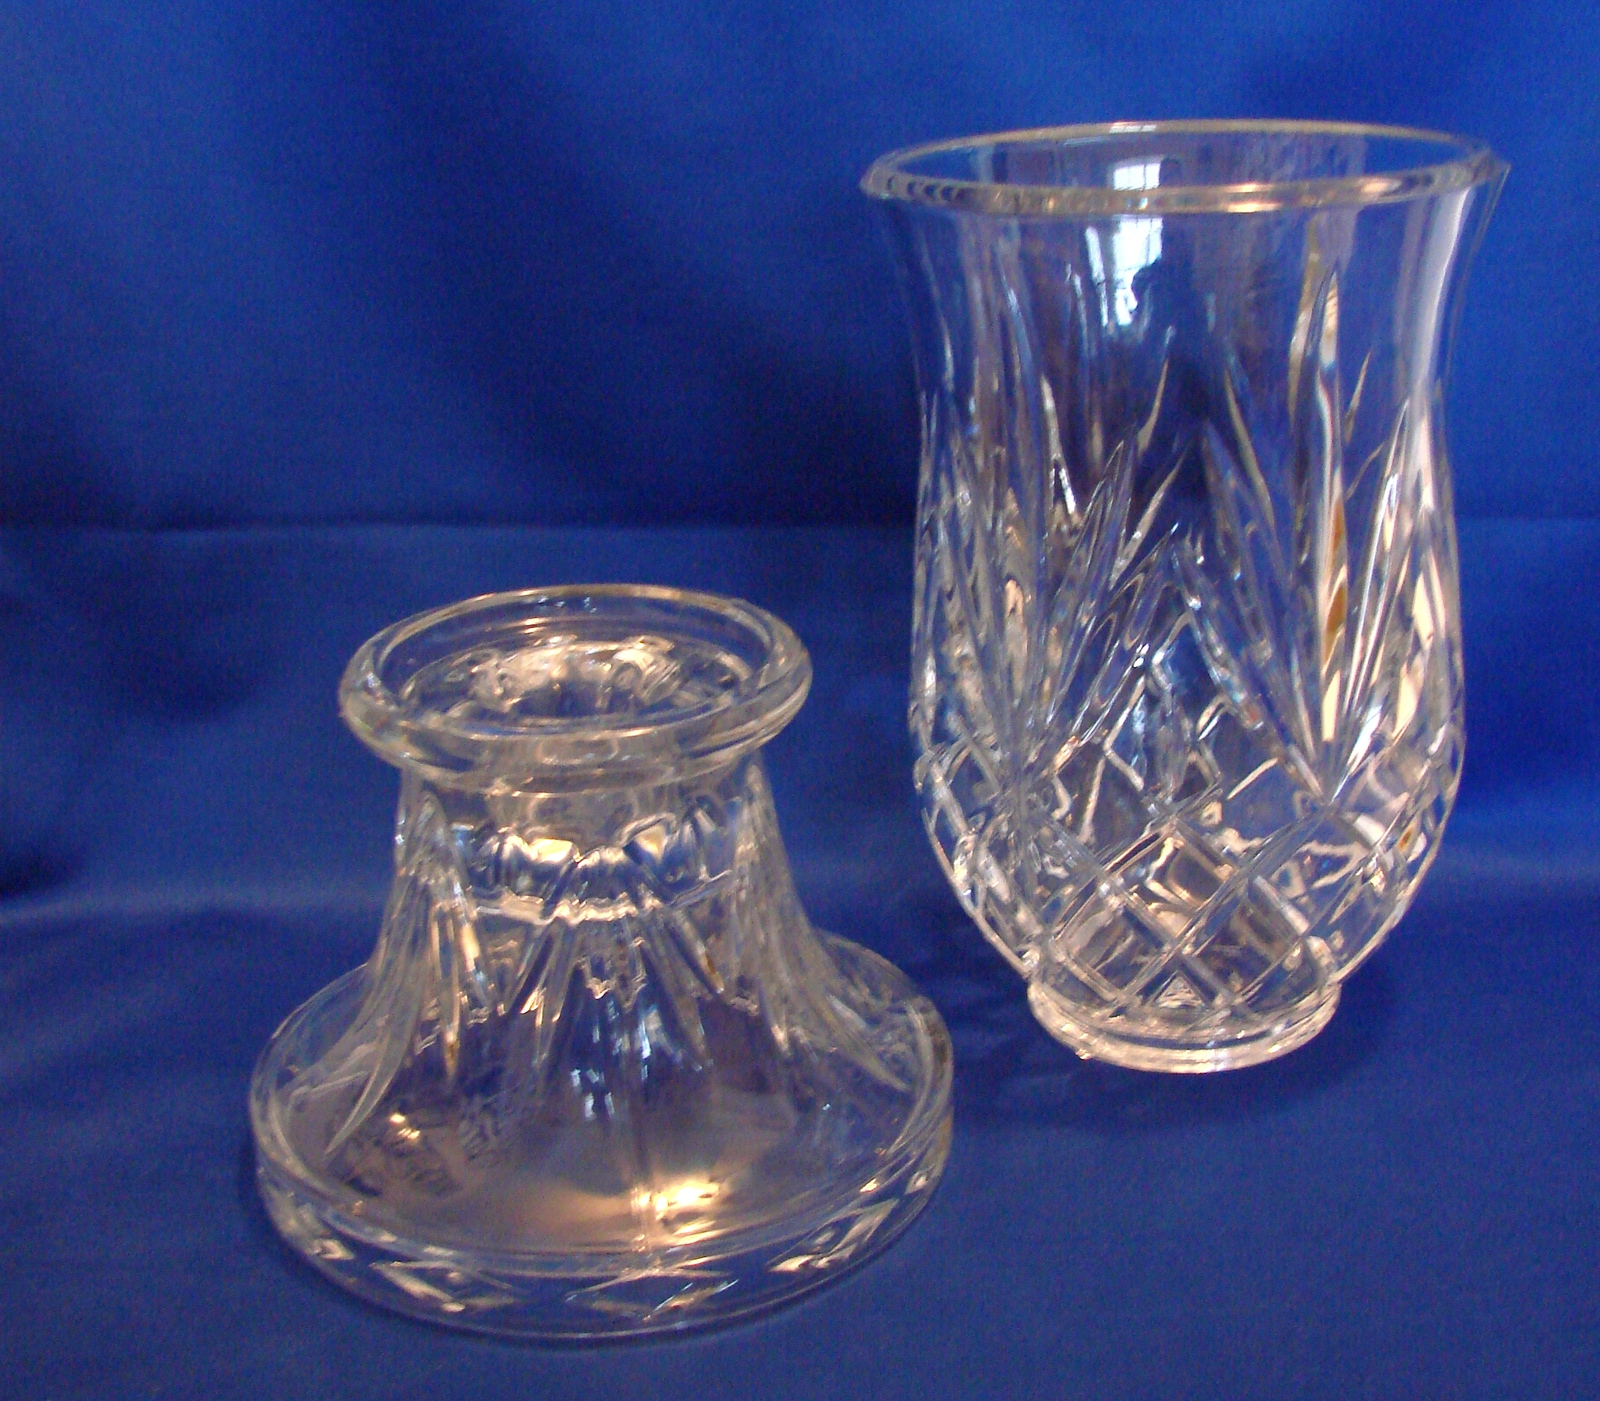 PartyLite Savannah Lead Crystal Hurricane Lamp Candle Holder  Two Piece